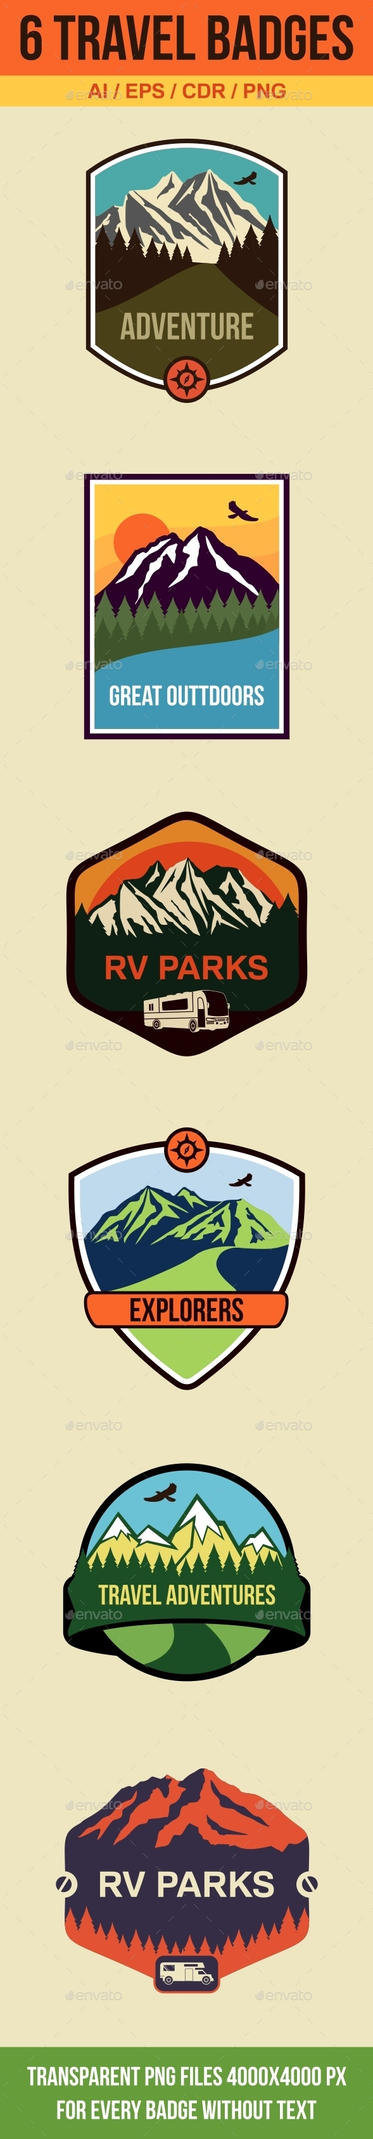 6 Travel Badges and Emblems by petyaivanova